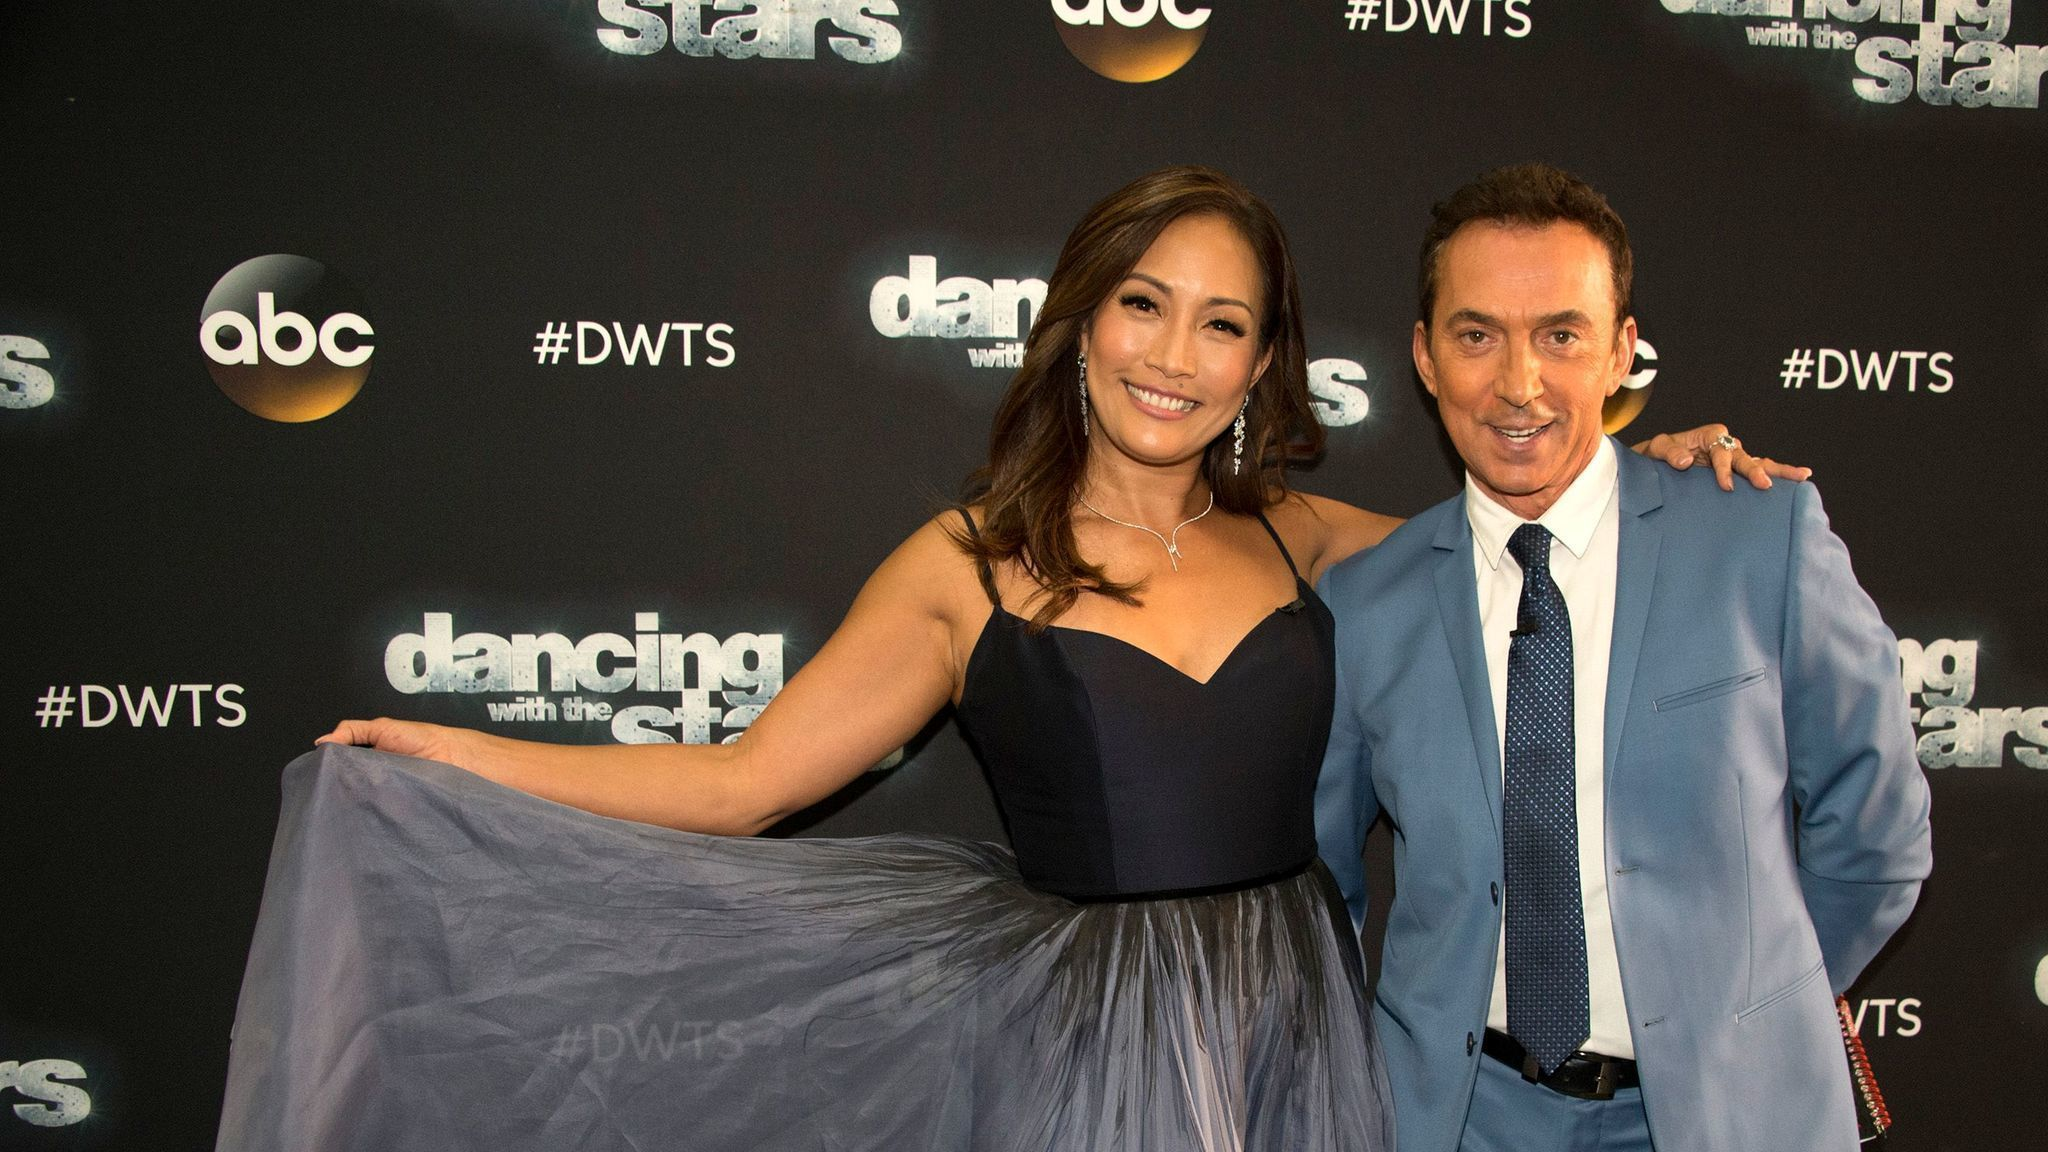 Who is dating on dancing with the stars 2013 australia